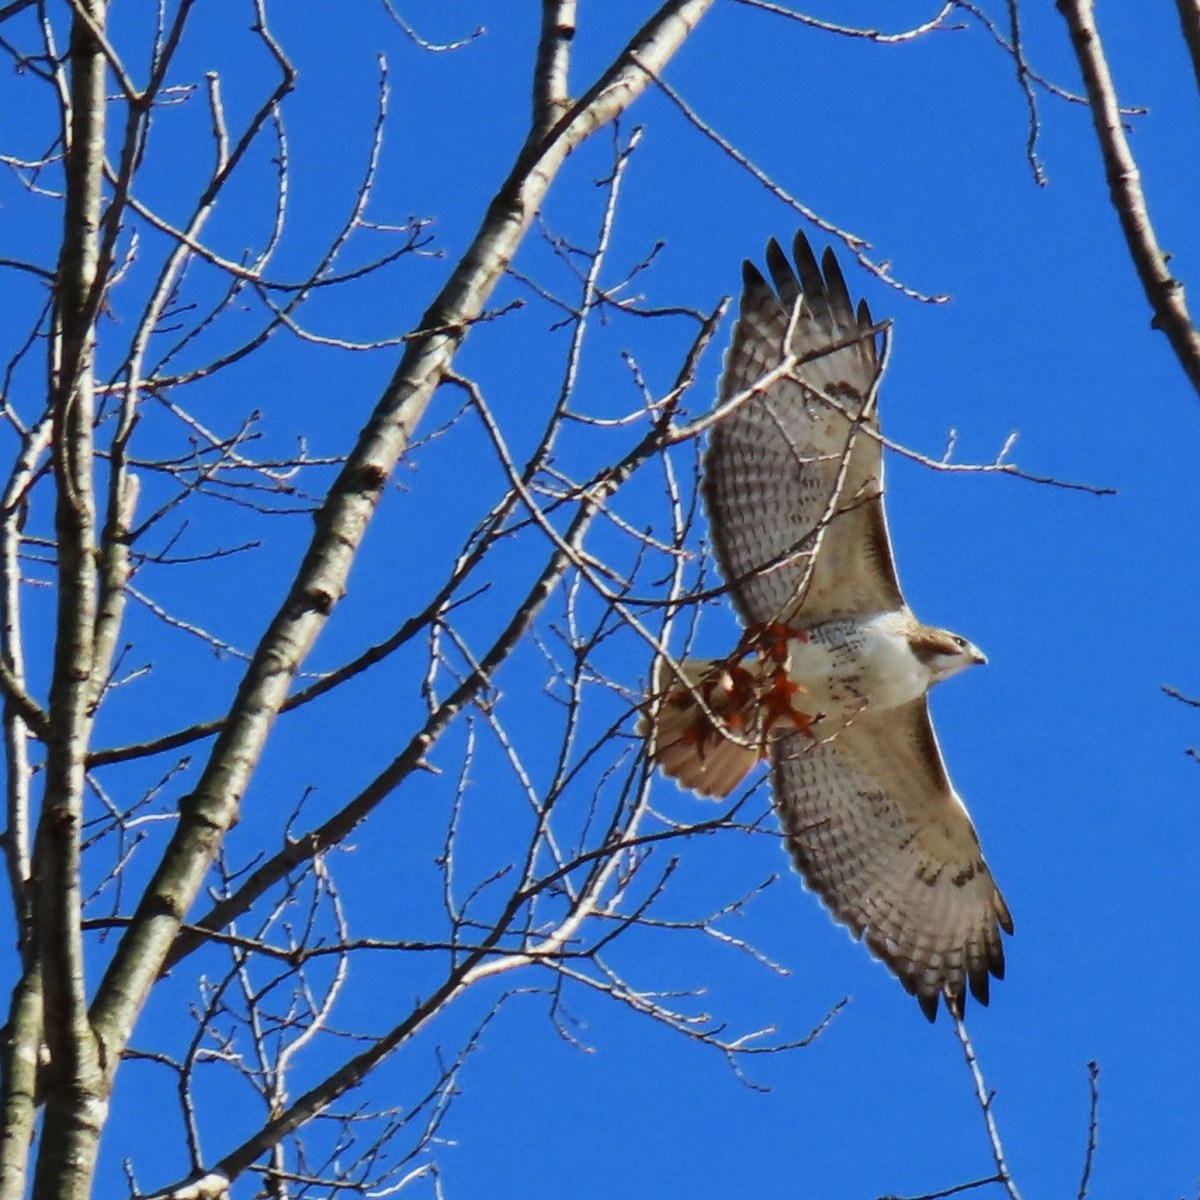 A Red-tailed Hawk soars above a tree, across a bright-blue sky